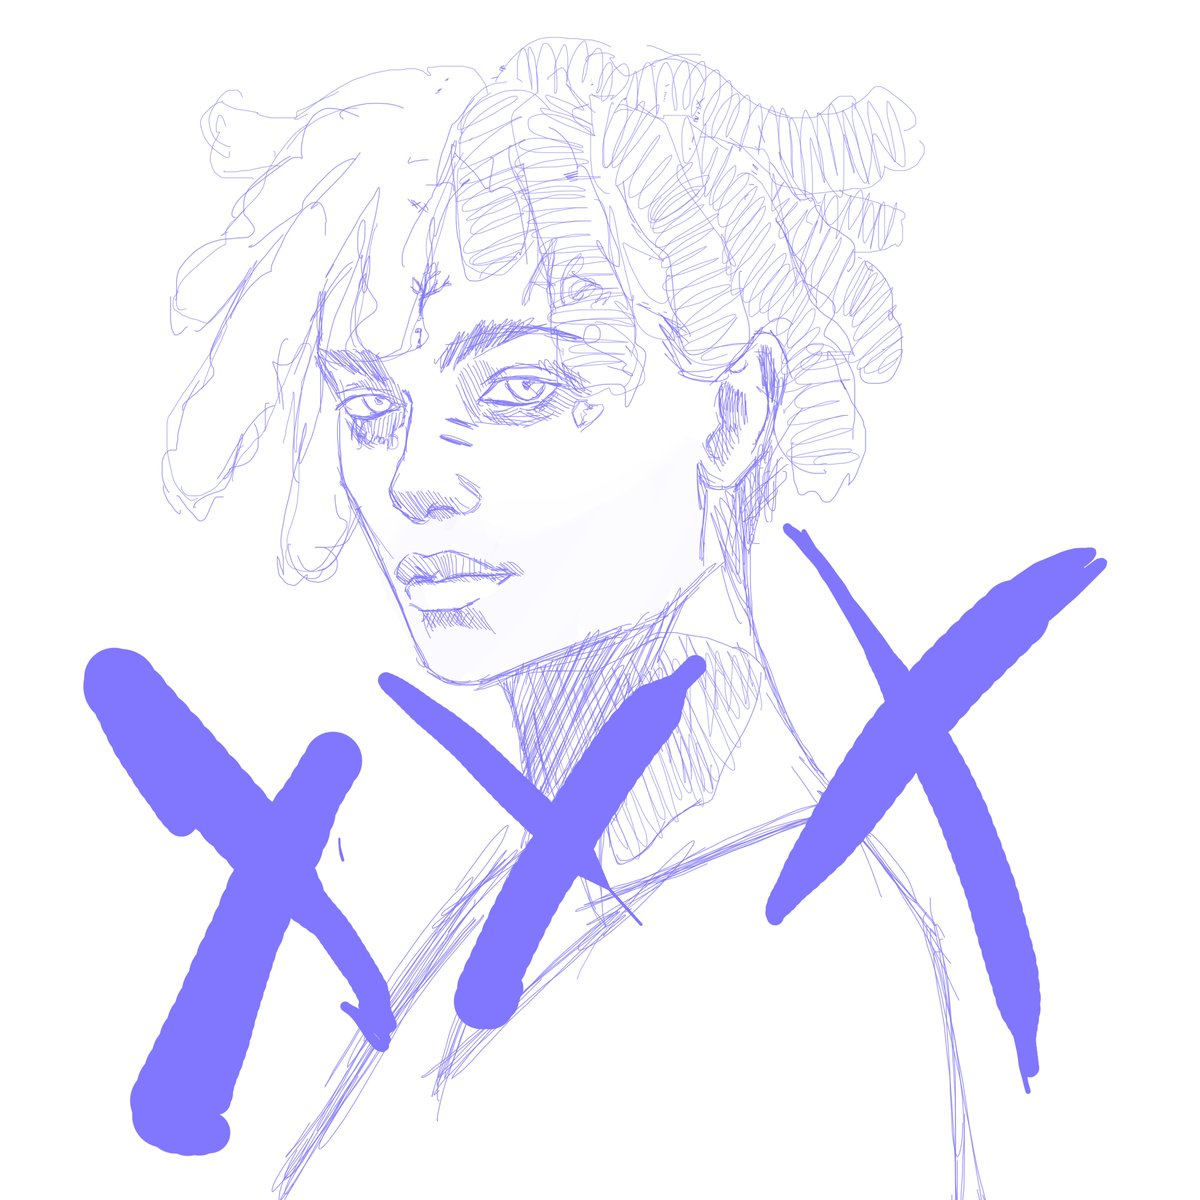 there's hope for the rest of us  . . . . . #ART #mystery #Manga #drawing #dessin #RIPXXXTentacion #XXTENTACION #digital #painting  #digitalpainting #artists #ilustration #fashion #comic #sketch #sketching # #expression #classic #symbol #  #dessinmanga #xxxtentacionpic.twitter.com/hNSTJjmOaX